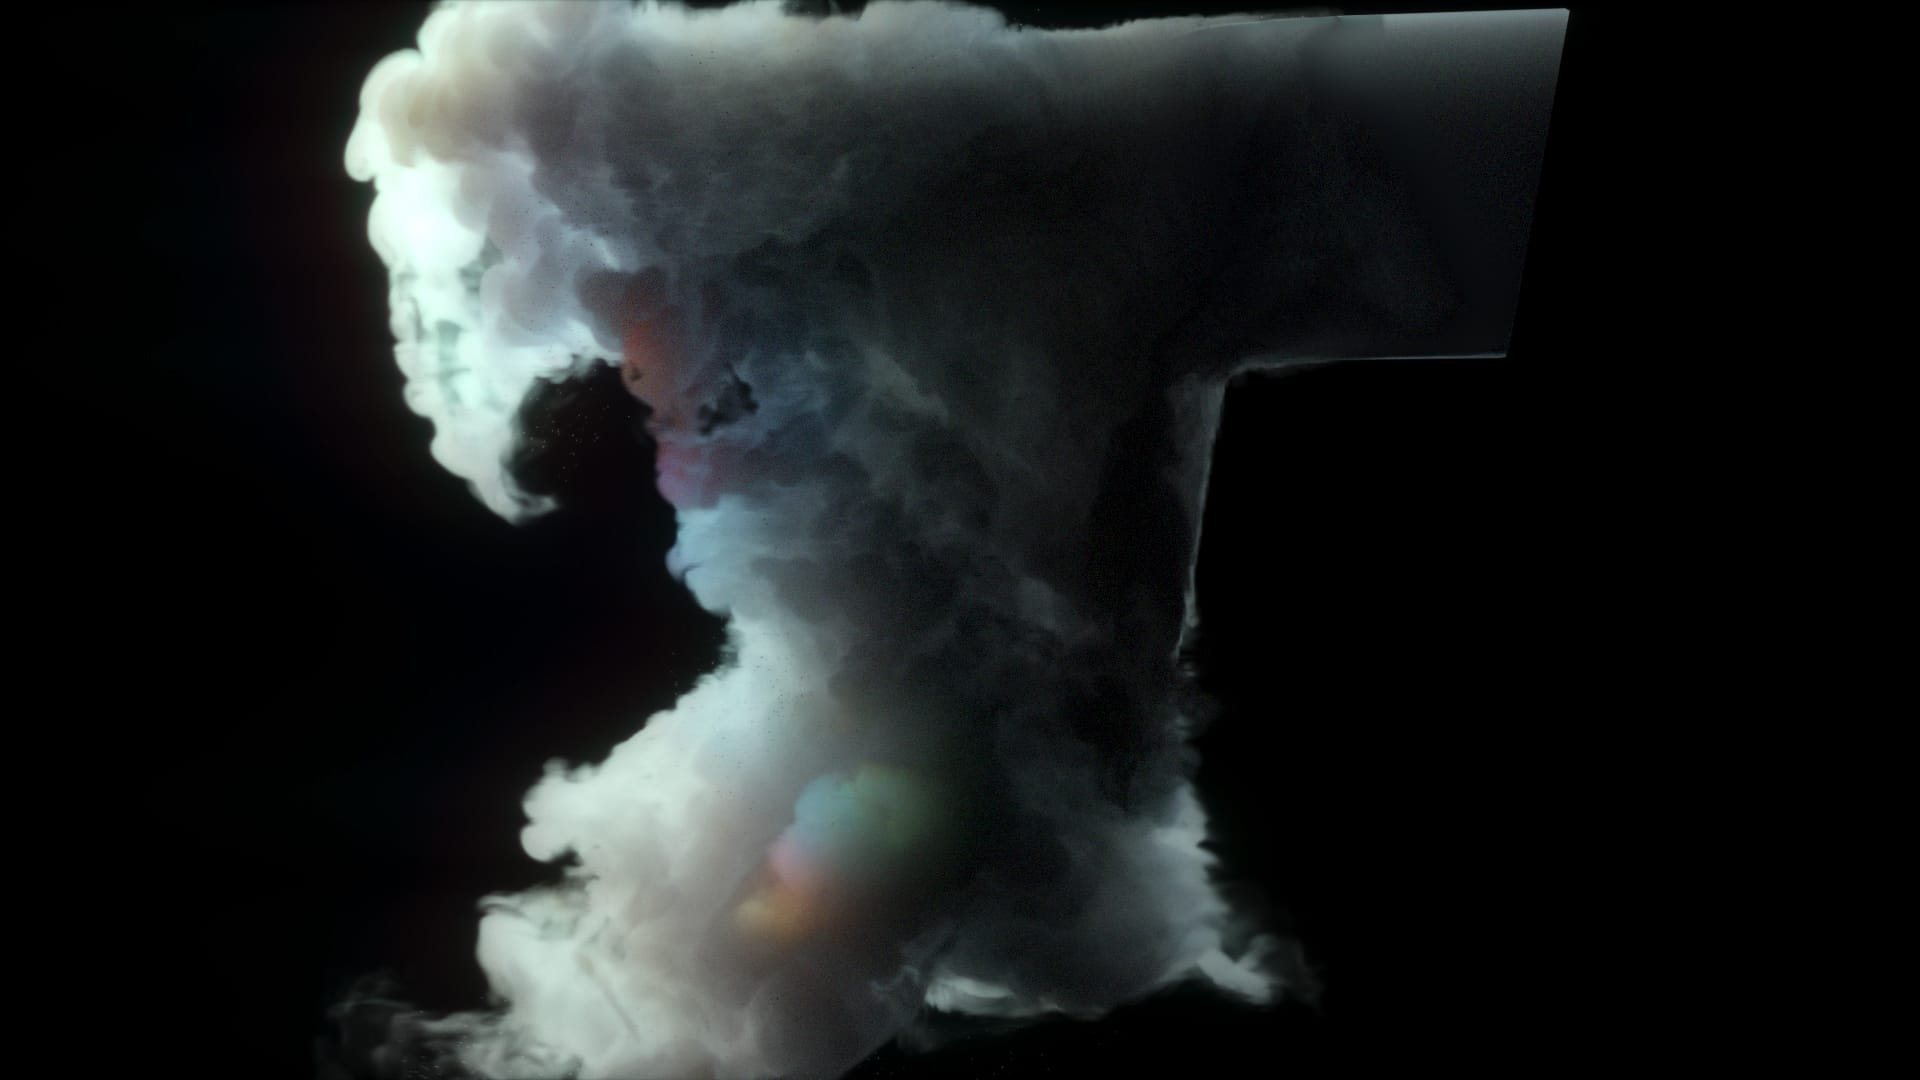 turner_smoke_0003_Layer 2.jpg